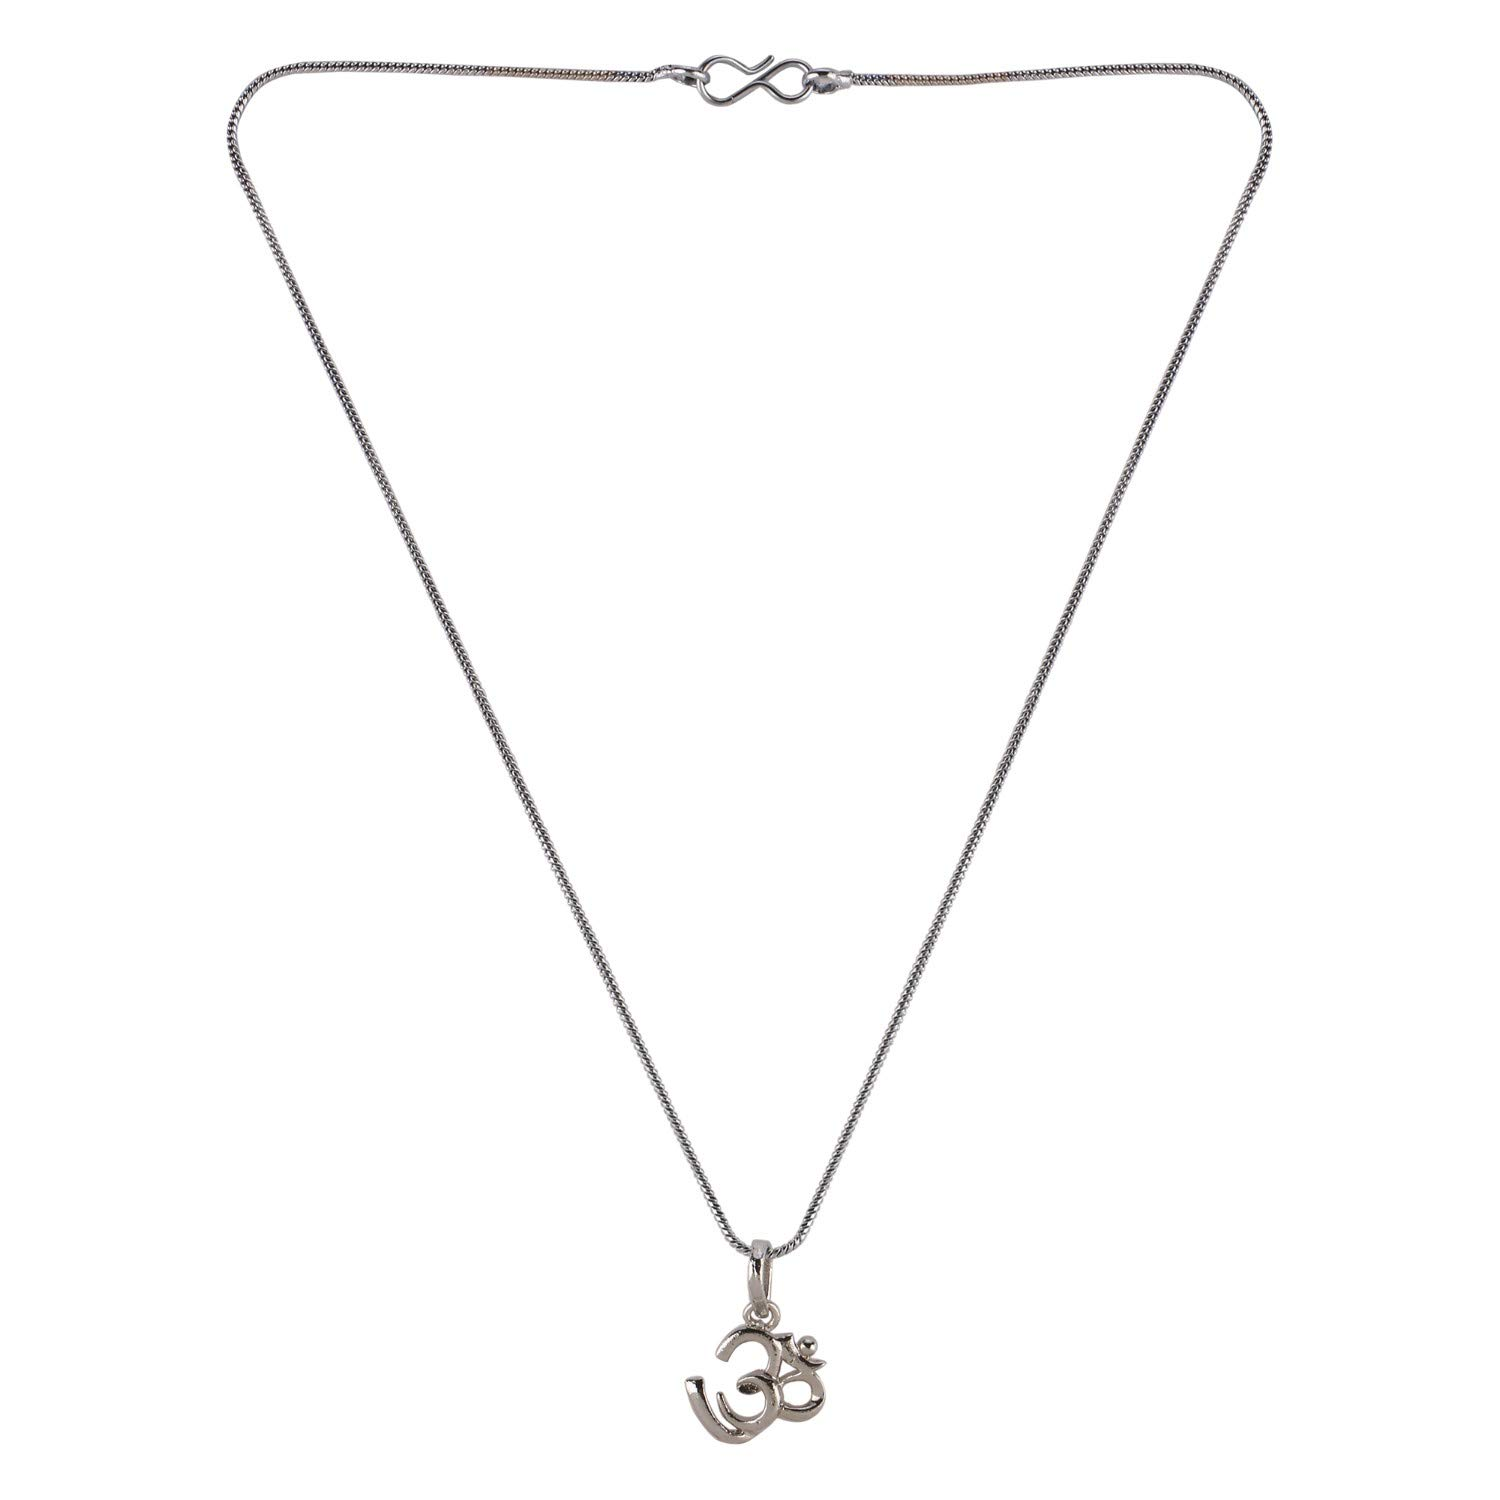 Efulgenz Silver Plated Religious OM Pendant Chain Necklace Jewelry for Women Girls Birthday Gift